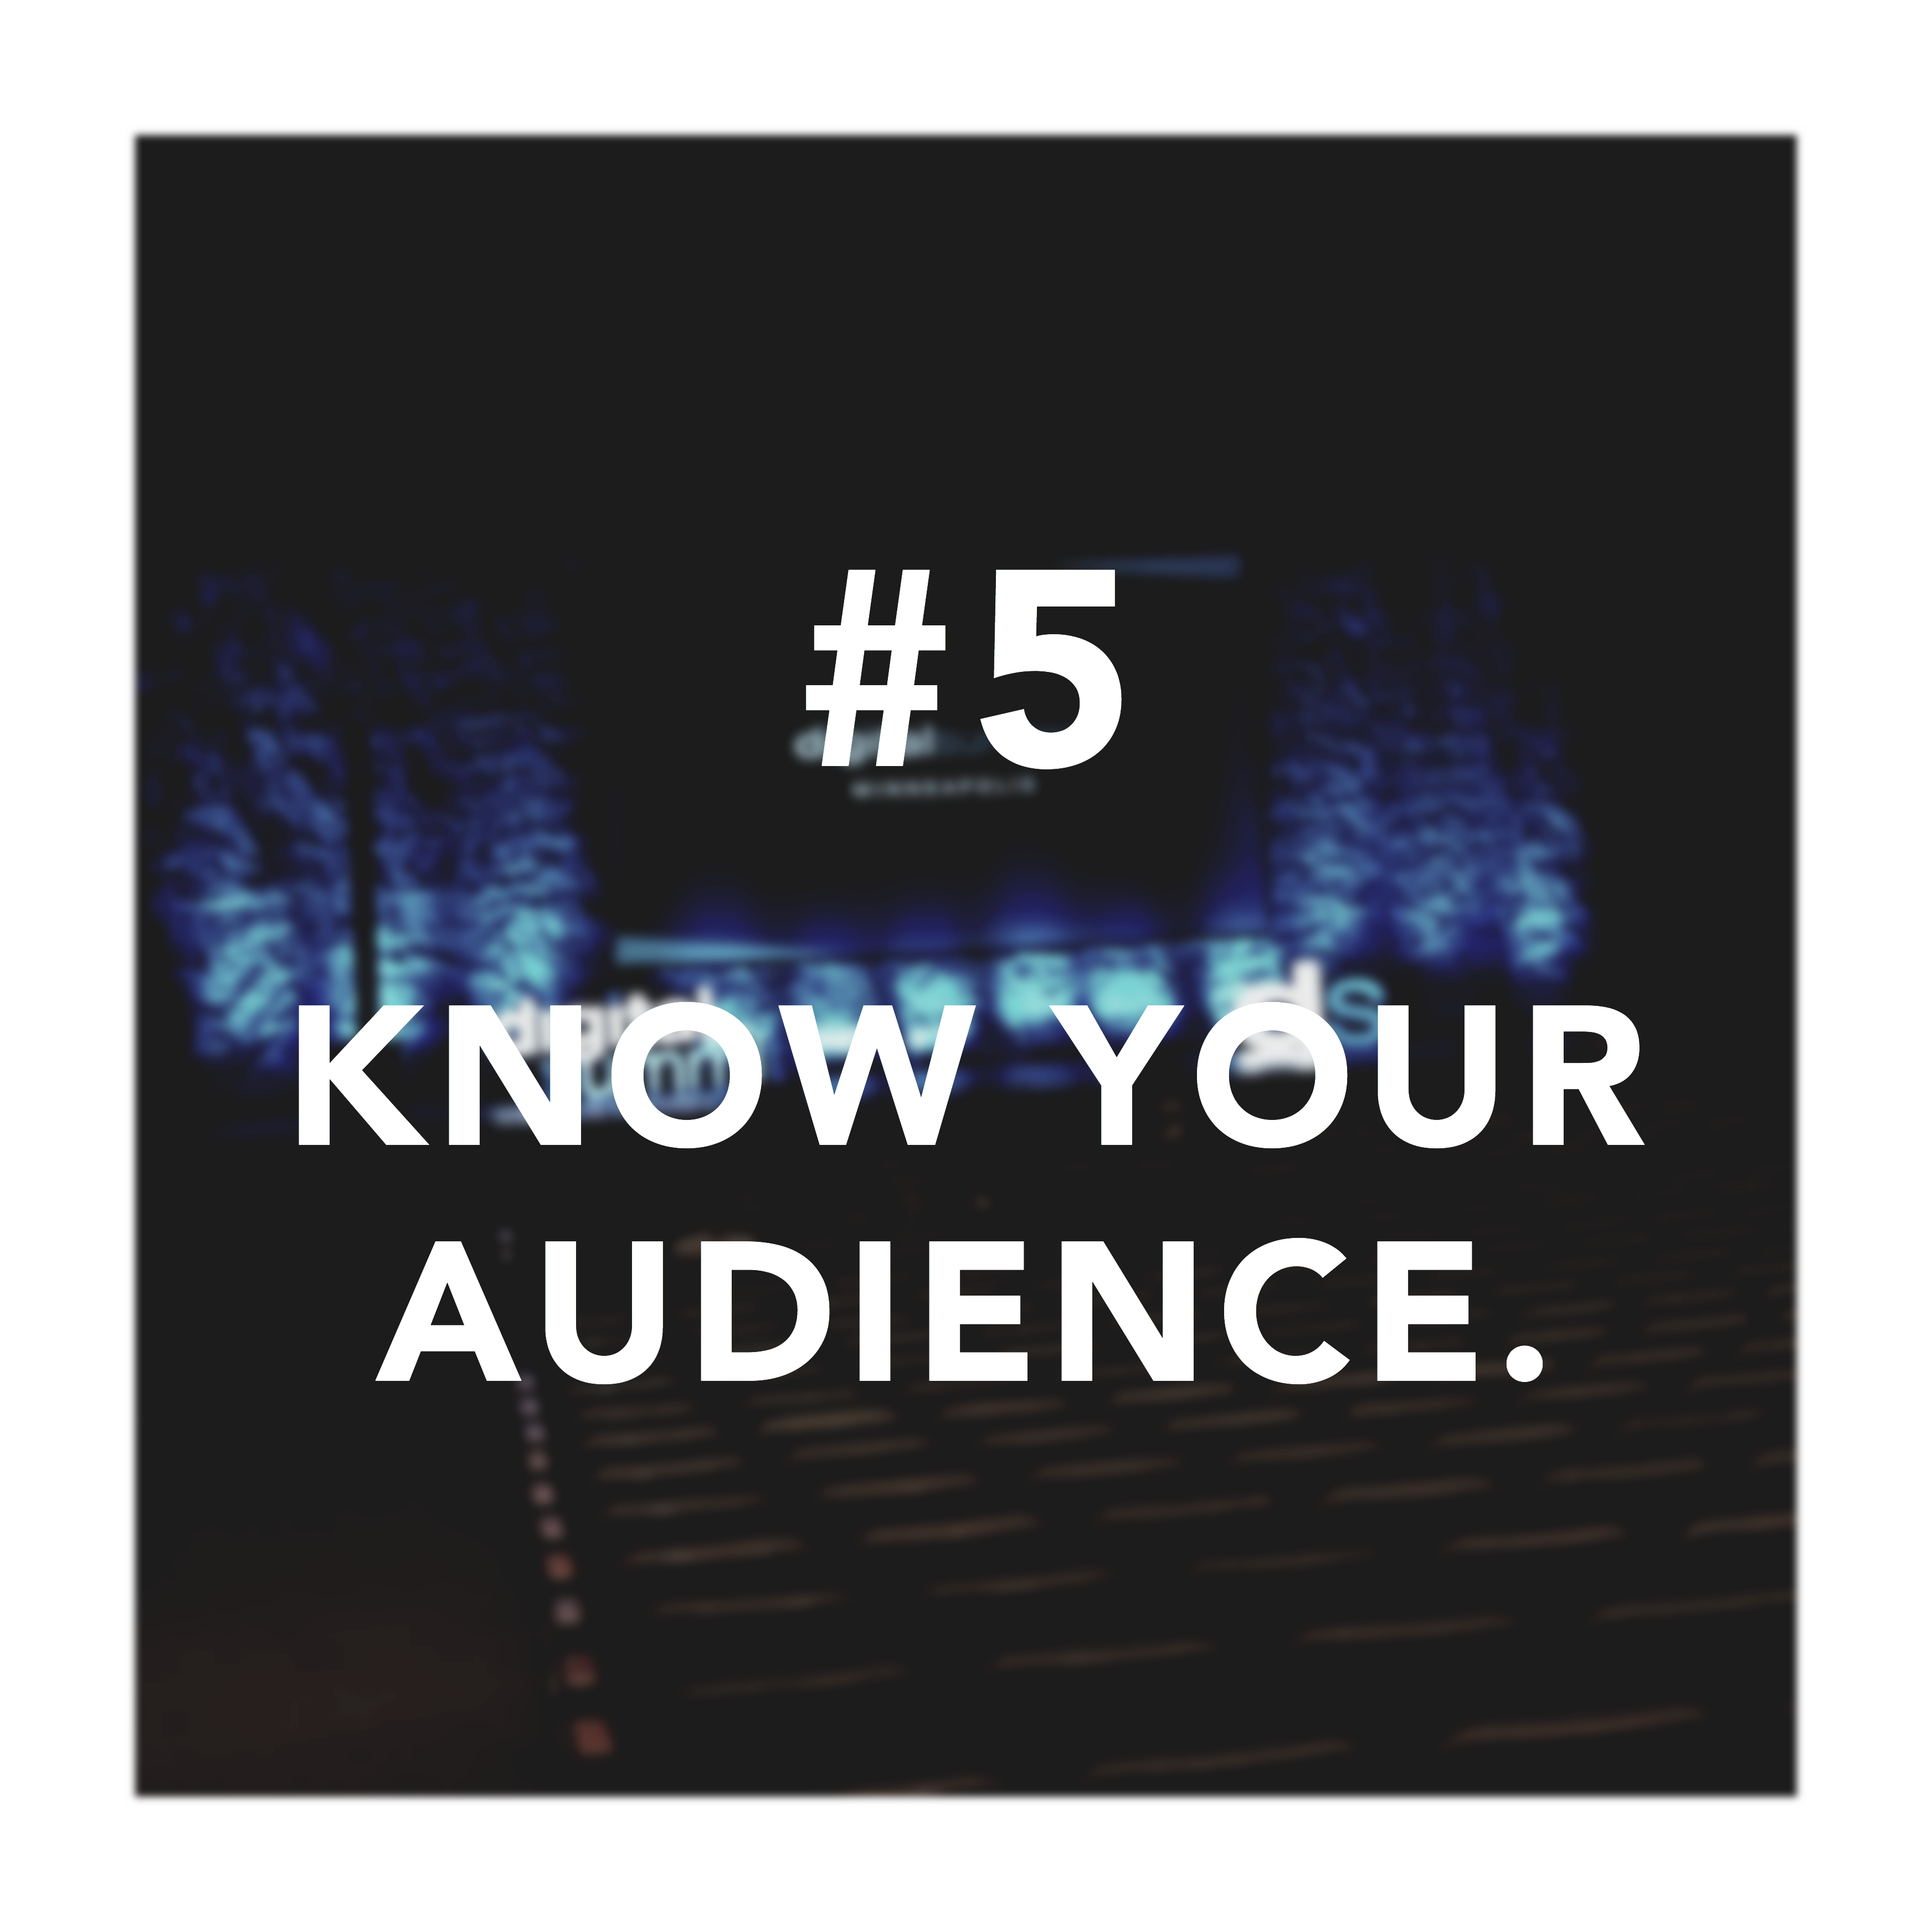 "Fifth takeaway for digital summit countdown with ""Know Your Audience"" text"